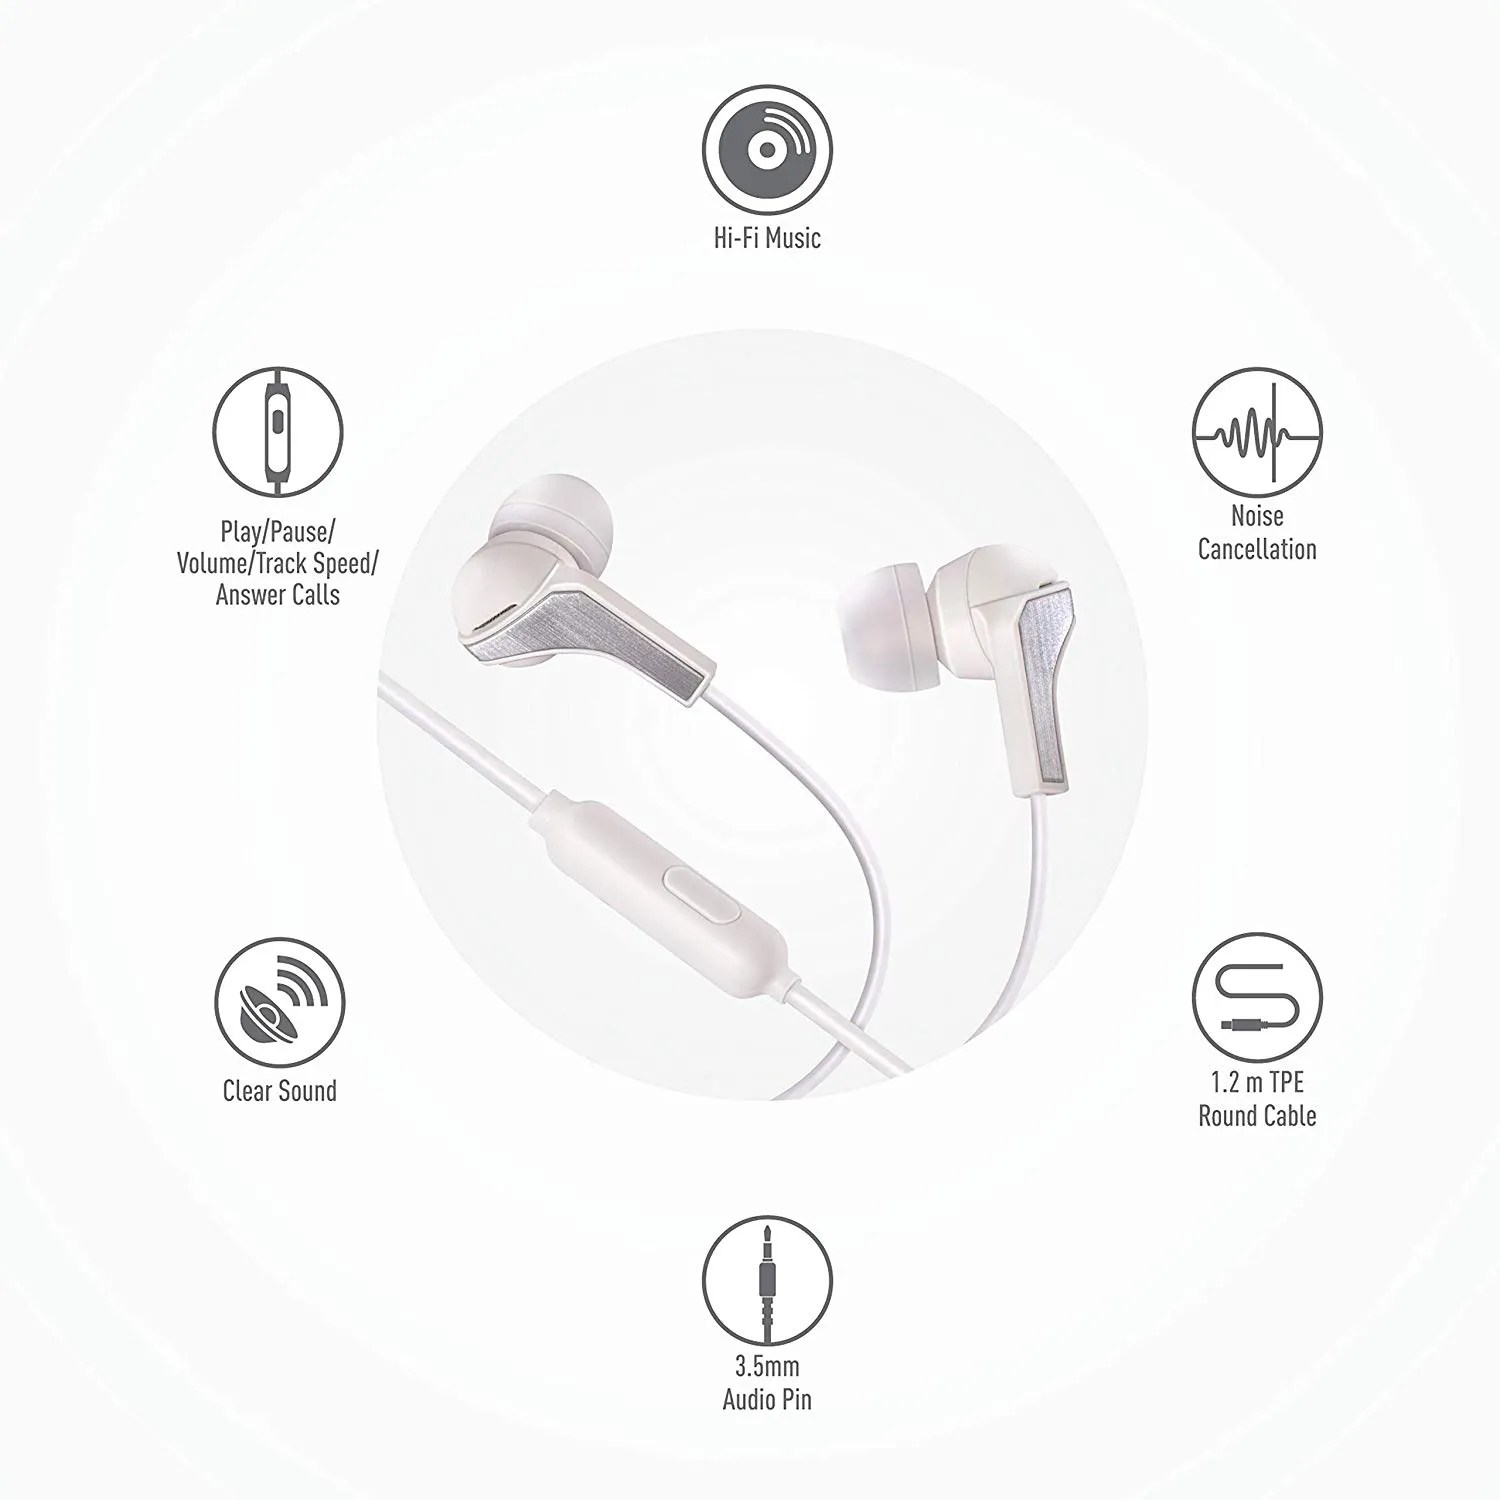 Syska Beat Pro Earphones With Noise Cancellation Launched